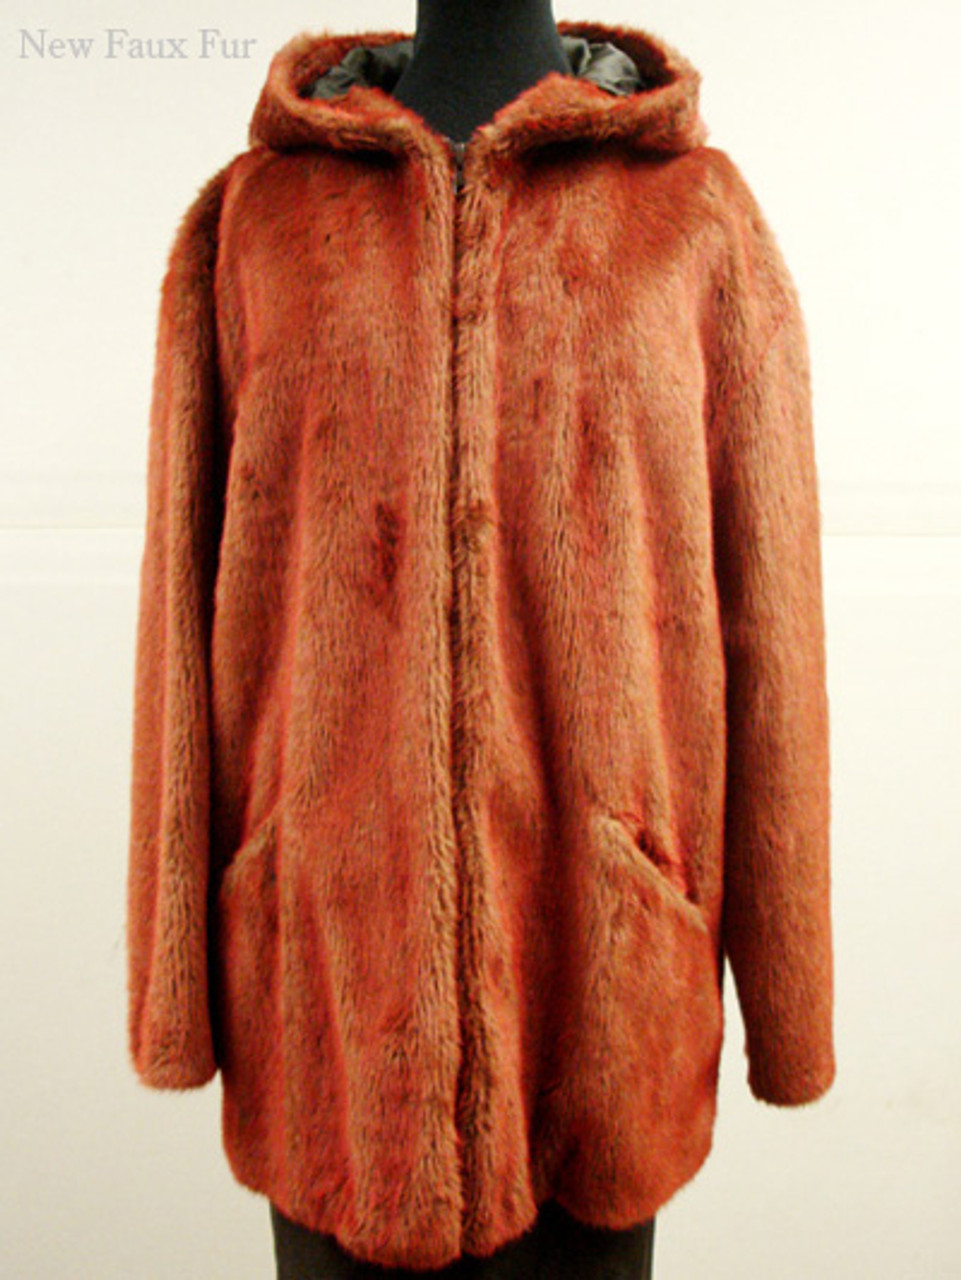 a6a83ddd0a04 Faux Fur Red Mink Jacket With Hood - furoutlet - fur coat, fur ...